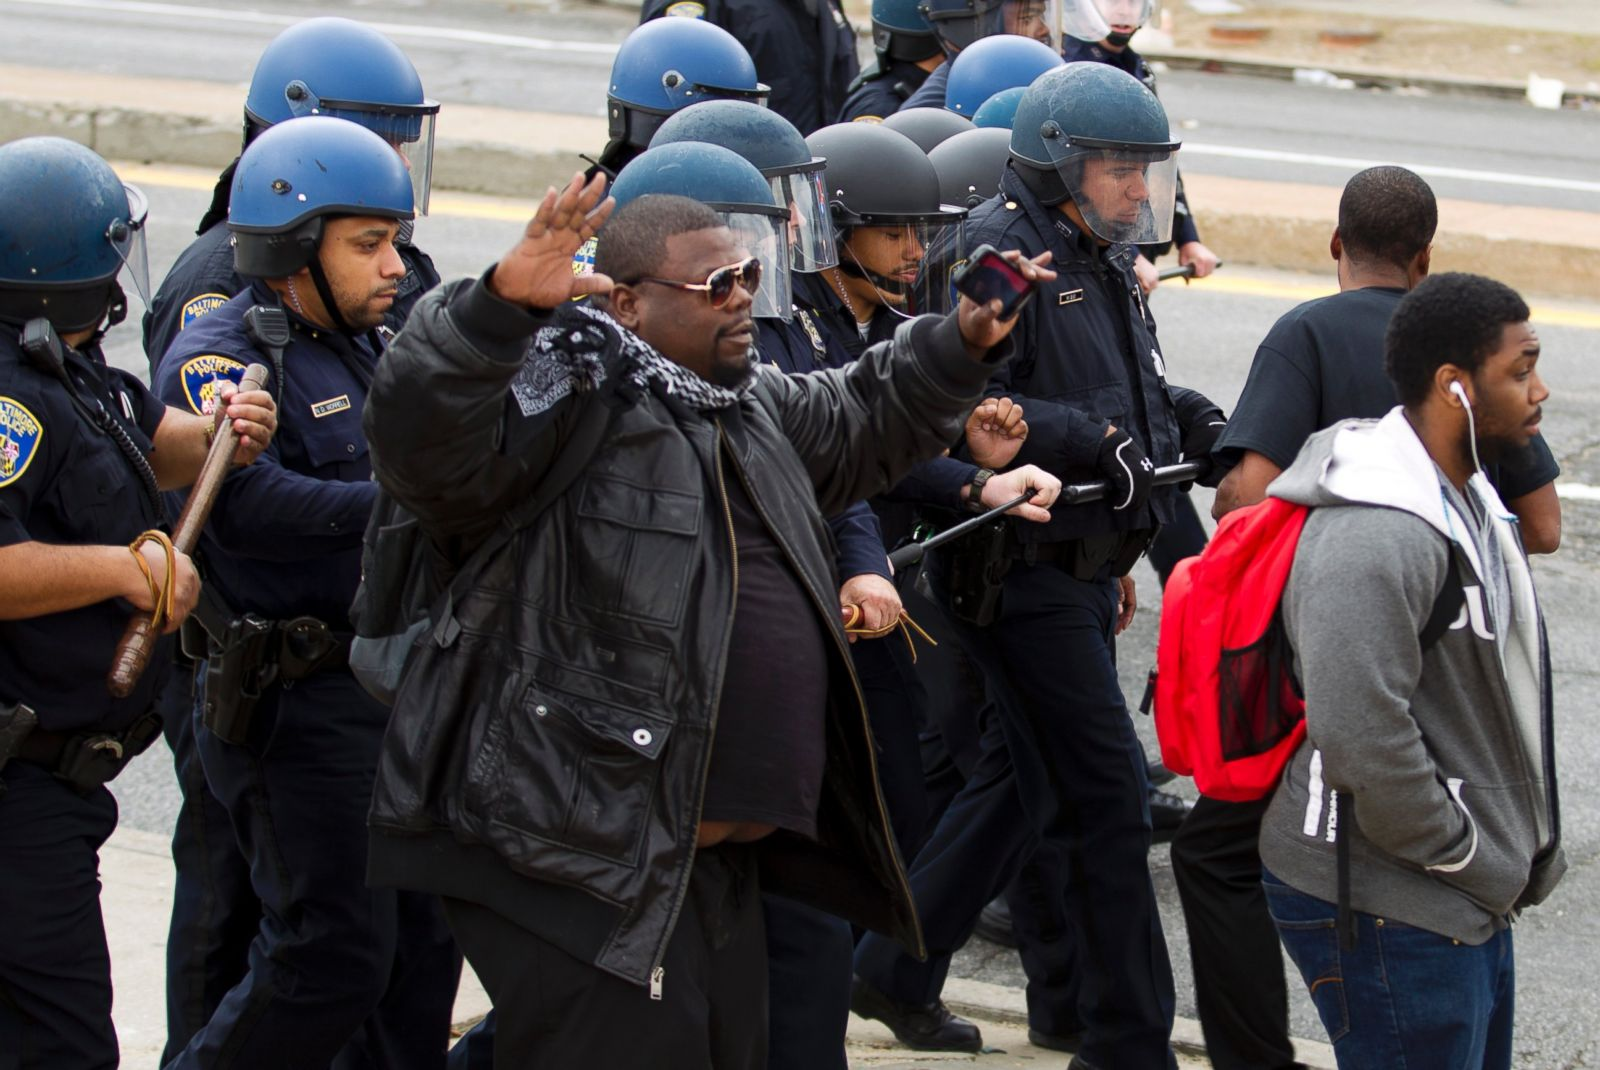 Baltimore police officers in riot gear push protestors back along - Baltimore Police Officers In Riot Gear Push Protestors Back Along 12